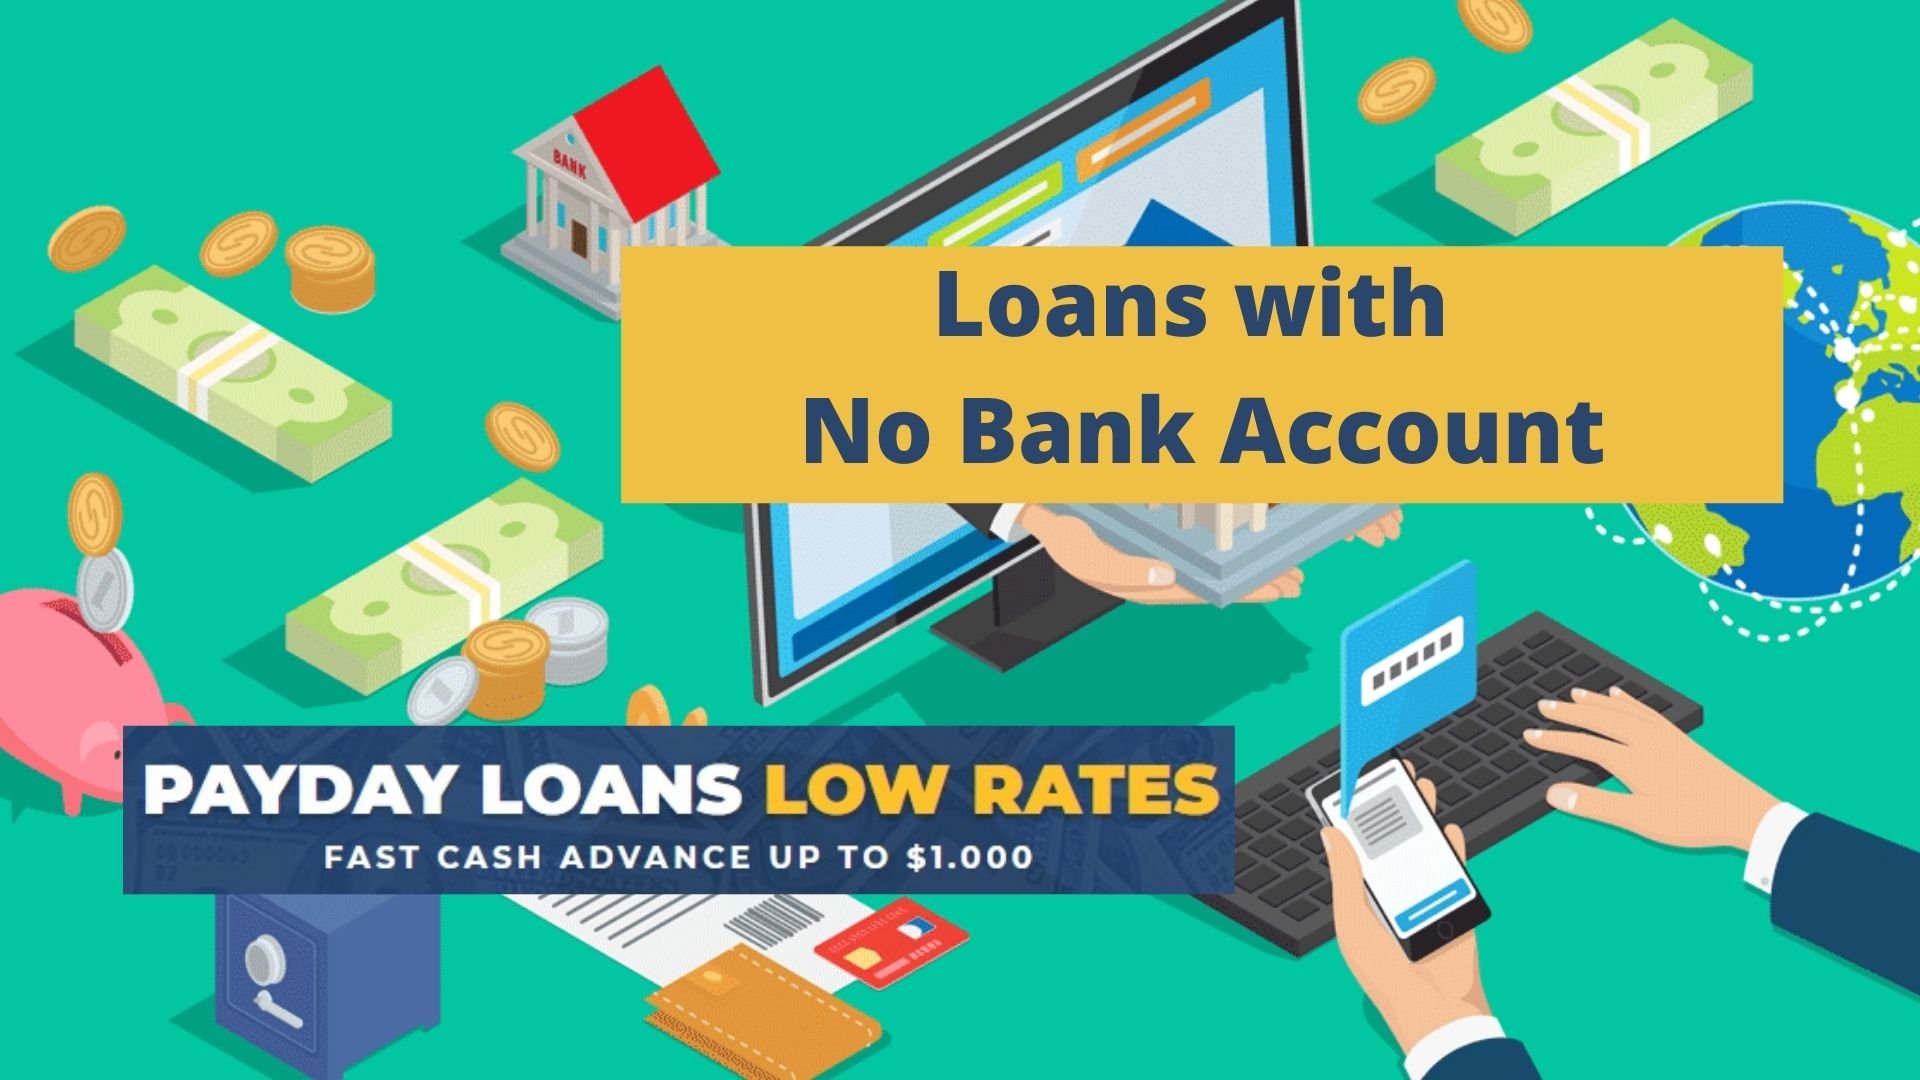 Quick Loans with No Bank Account